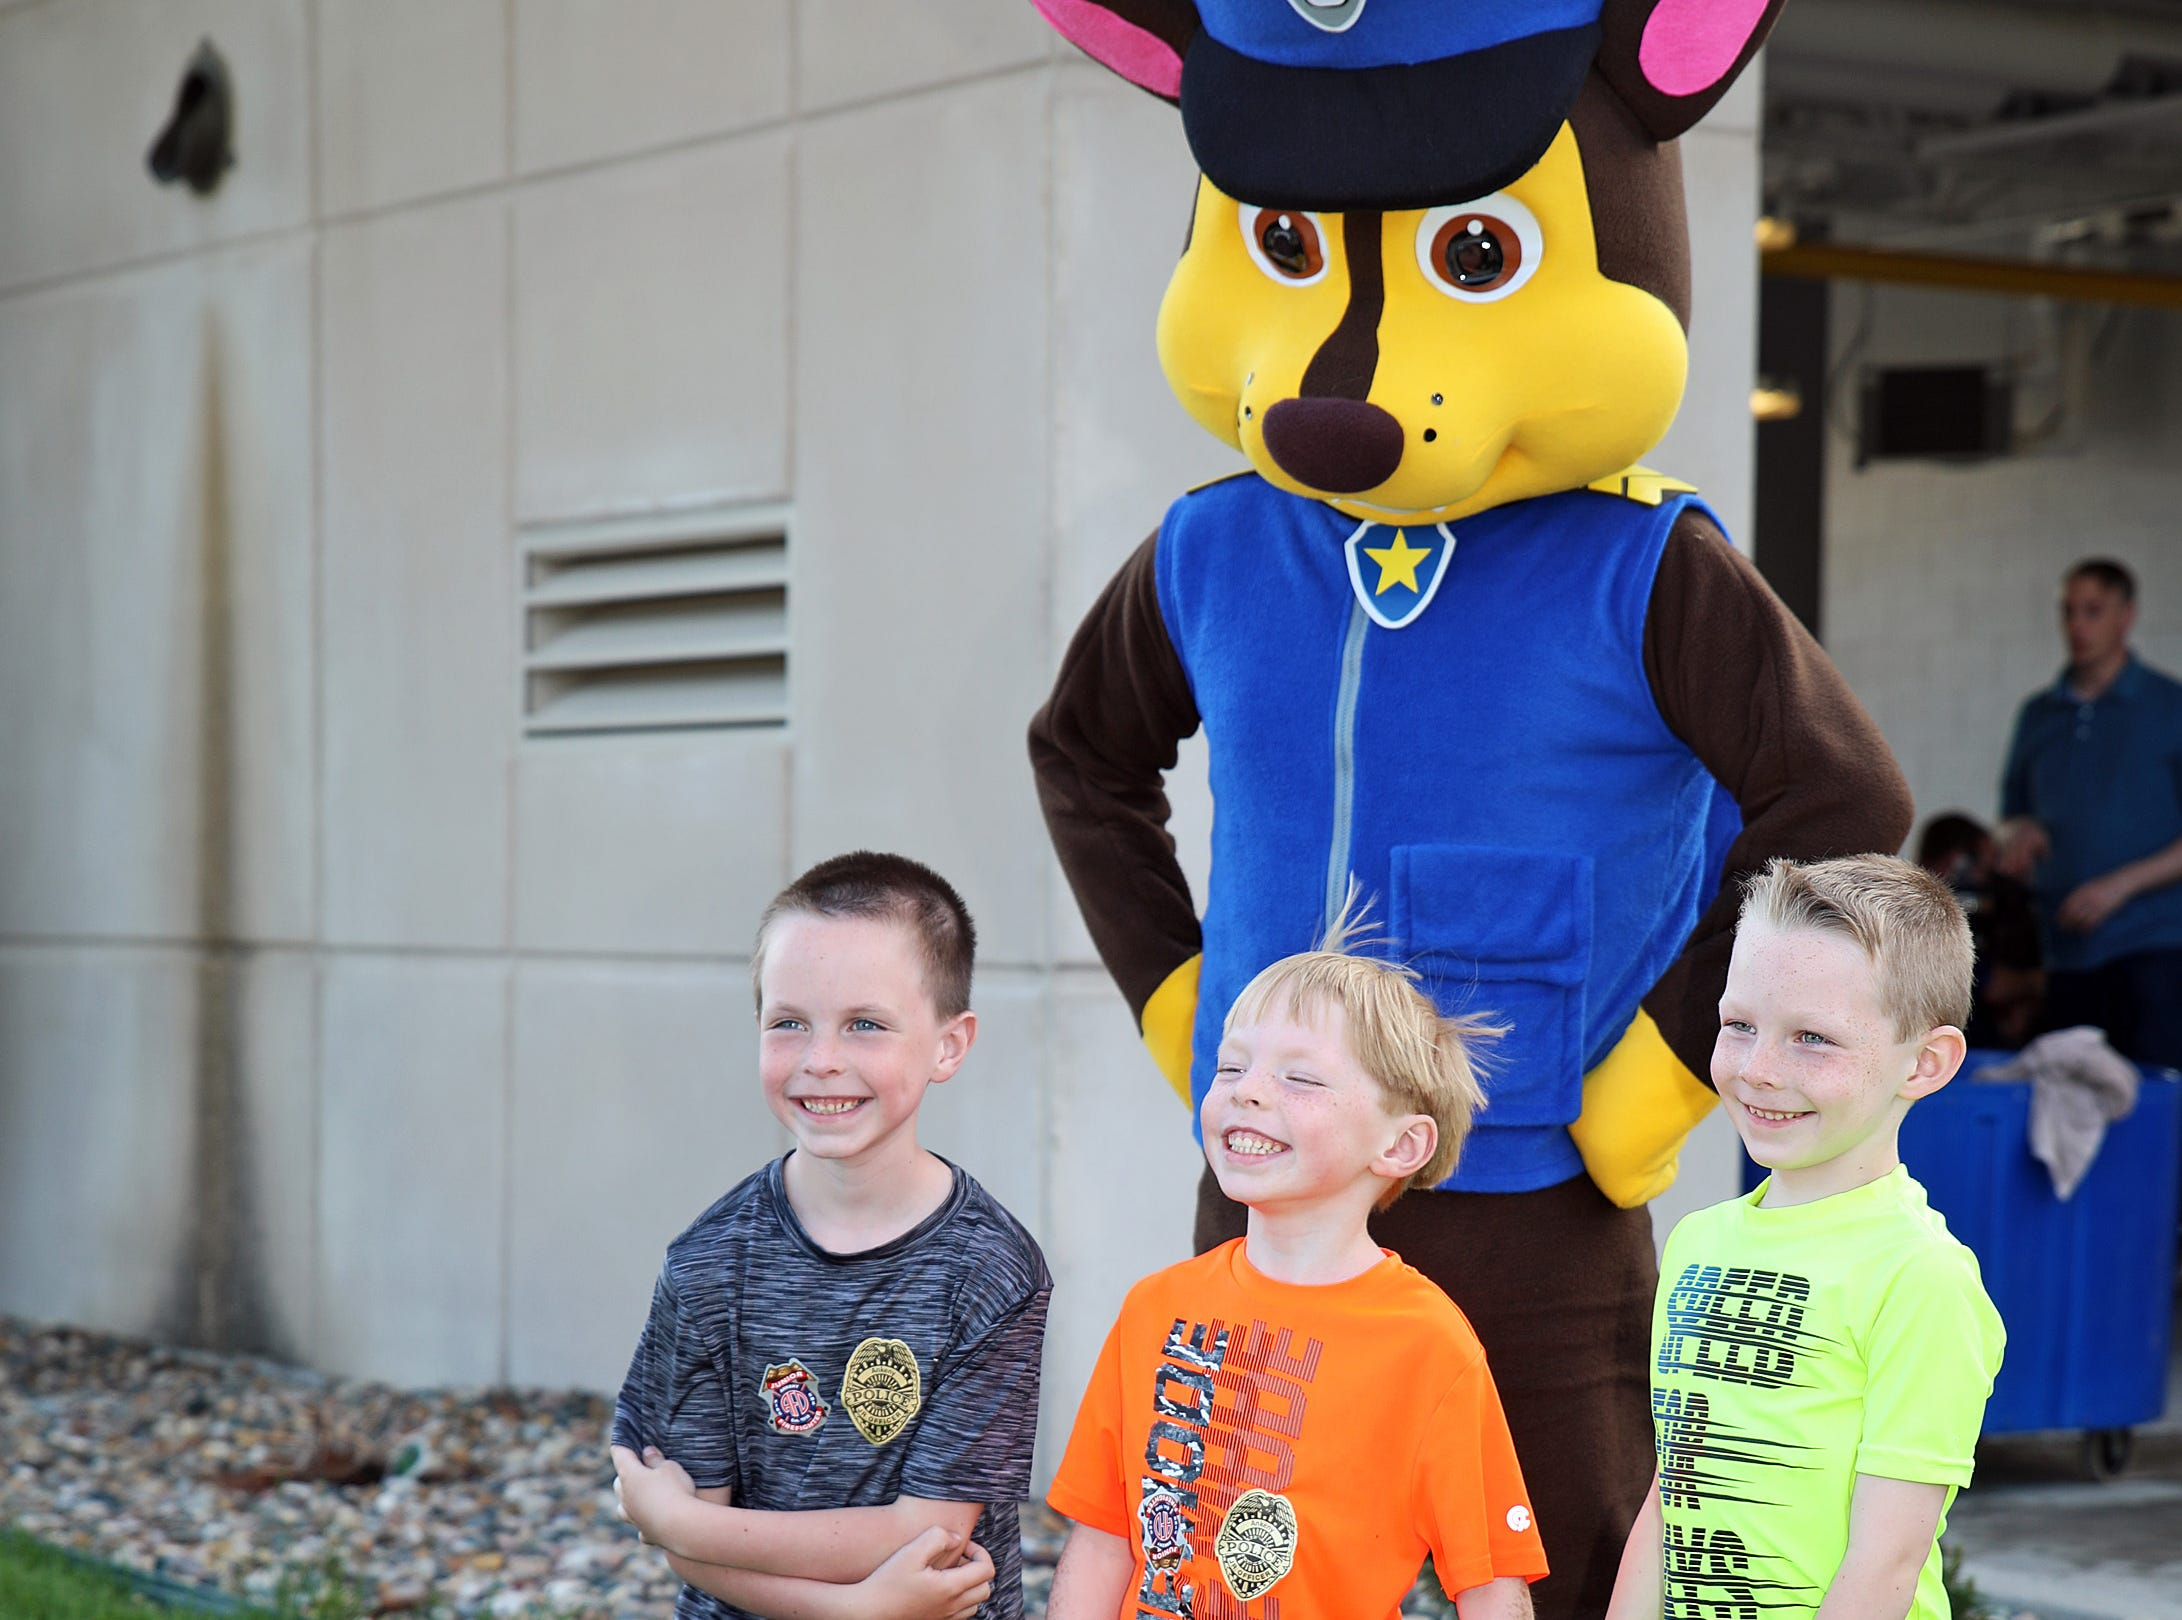 The PAW Patrol is on the scene and Chase is on the case with three young men during the Ankeny Police Week Community Picnic on Tuesday, May 14, 2019 at the Ankeny Police Headquarters located at 411 SW Ordnance Road. The event featured a tour of the police station, magician Jonathon May, free Chick Fil-A sandwiches for the first 1,000 guests, free Kona Ice, temporary tattoos, and a great opportunity to meet the officers who protect and serve the city of Ankeny.